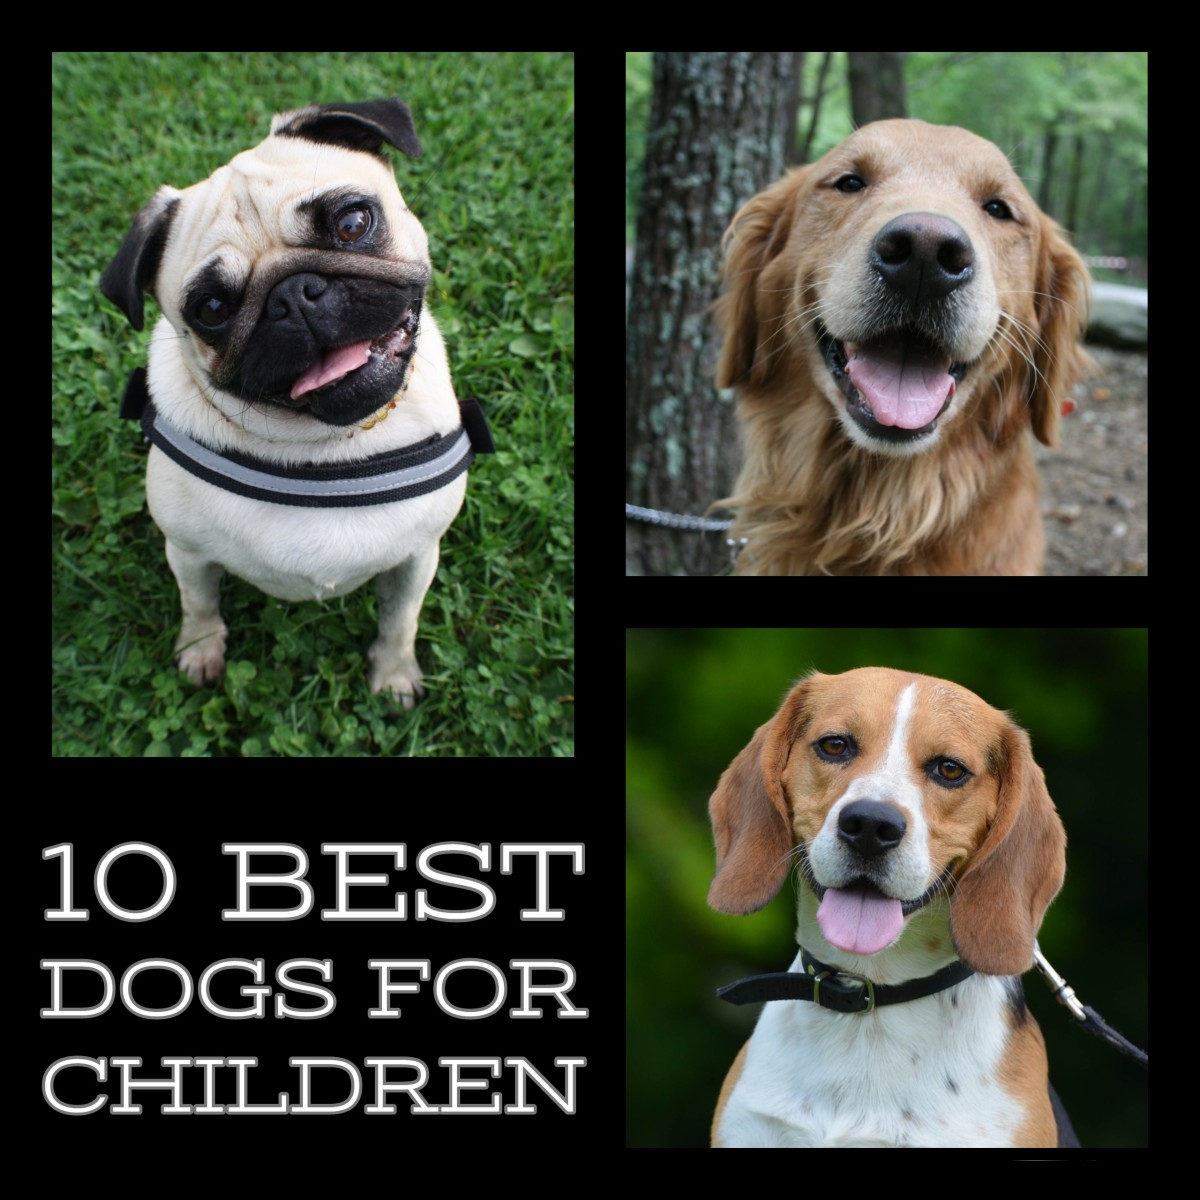 10 best dogs for children.